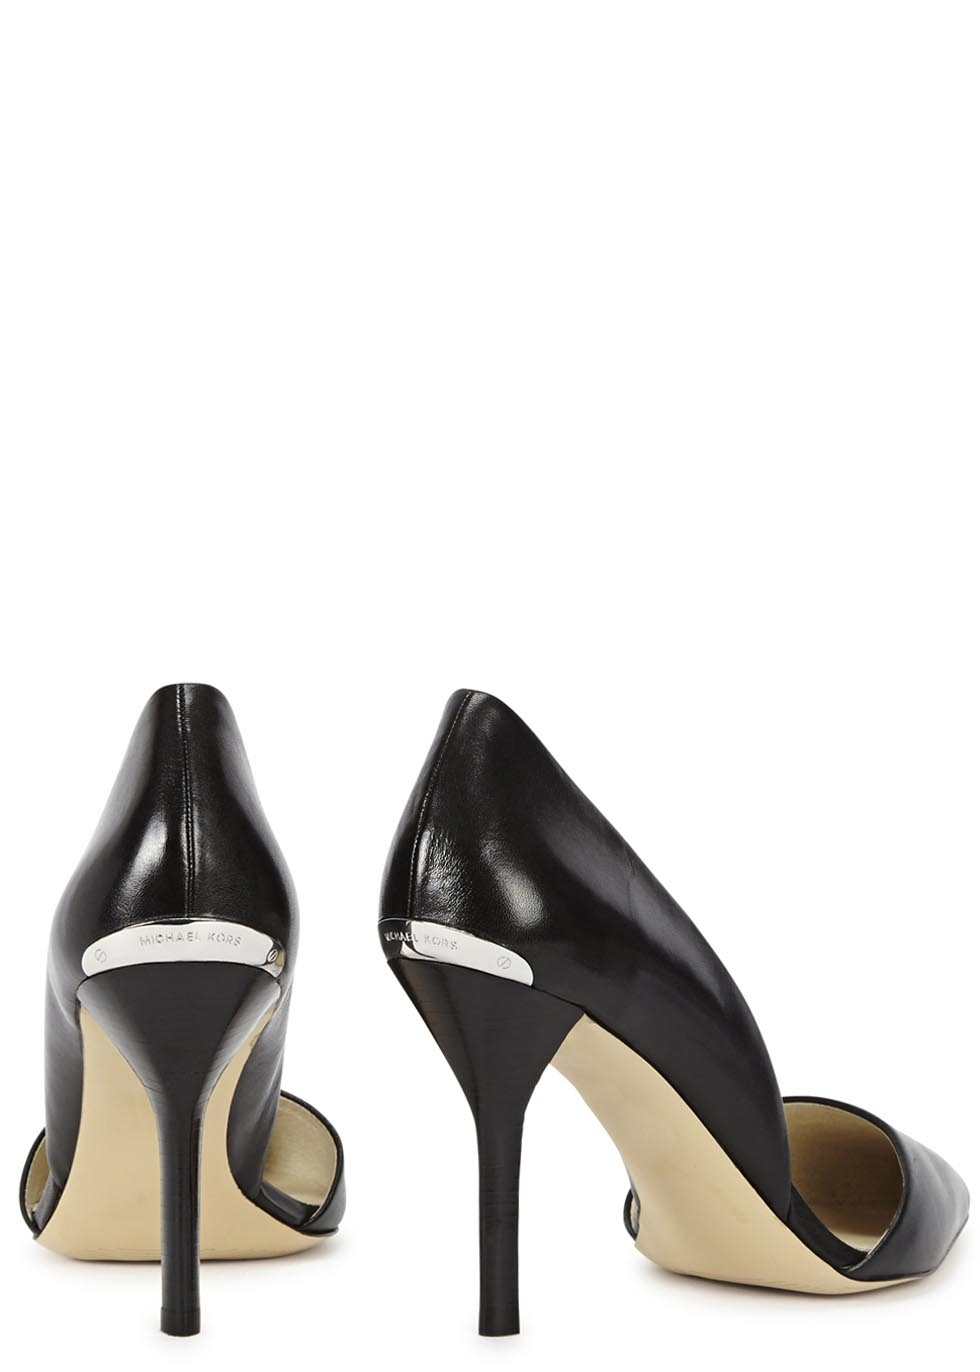 dfba12aa4fa8 Michael Kors Julieta Black Leather Pumps in Black - Lyst